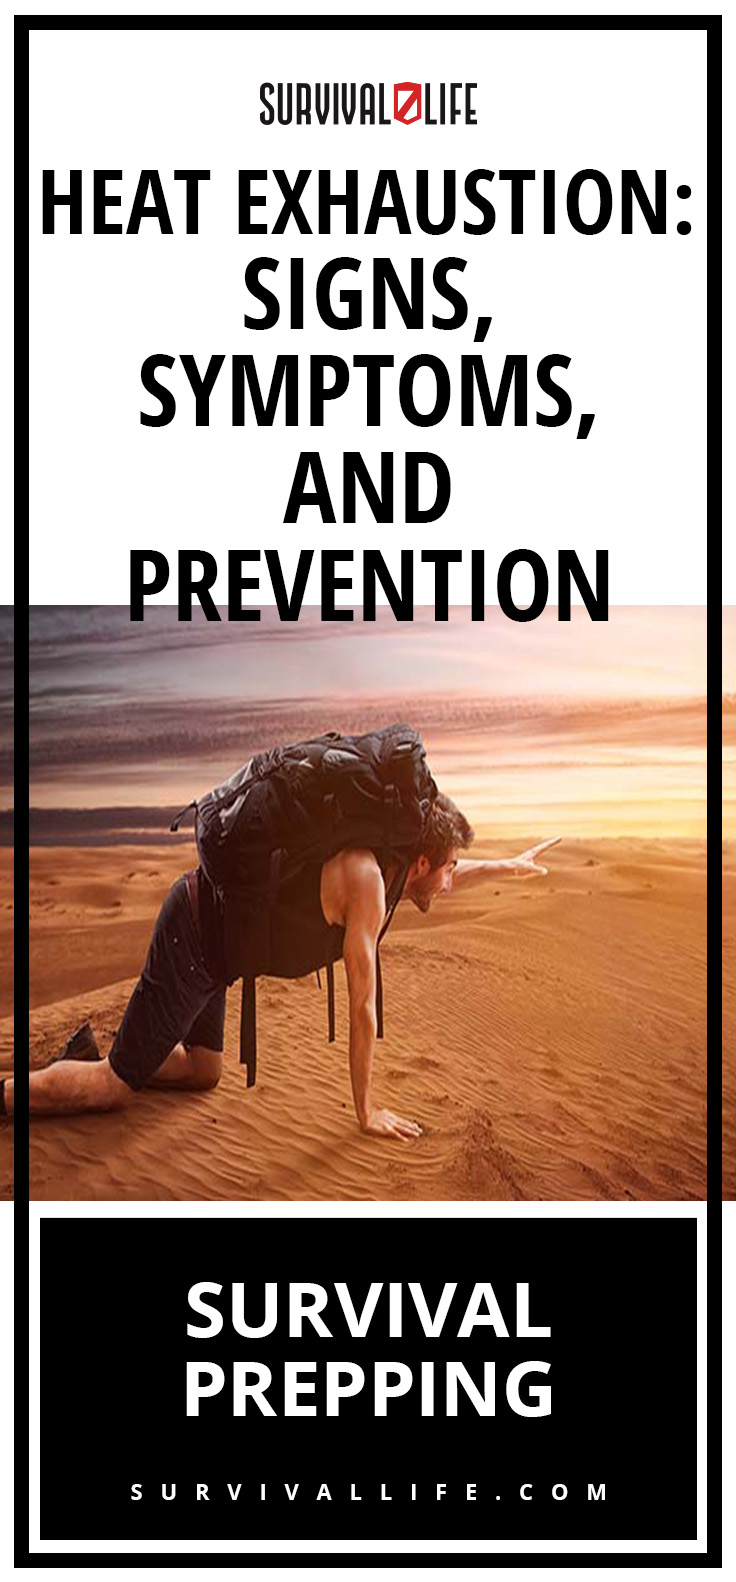 Check out Heat Exhaustion: Signs, Symptoms and Prevention at https://survivallife.com/heat-exhaustion/